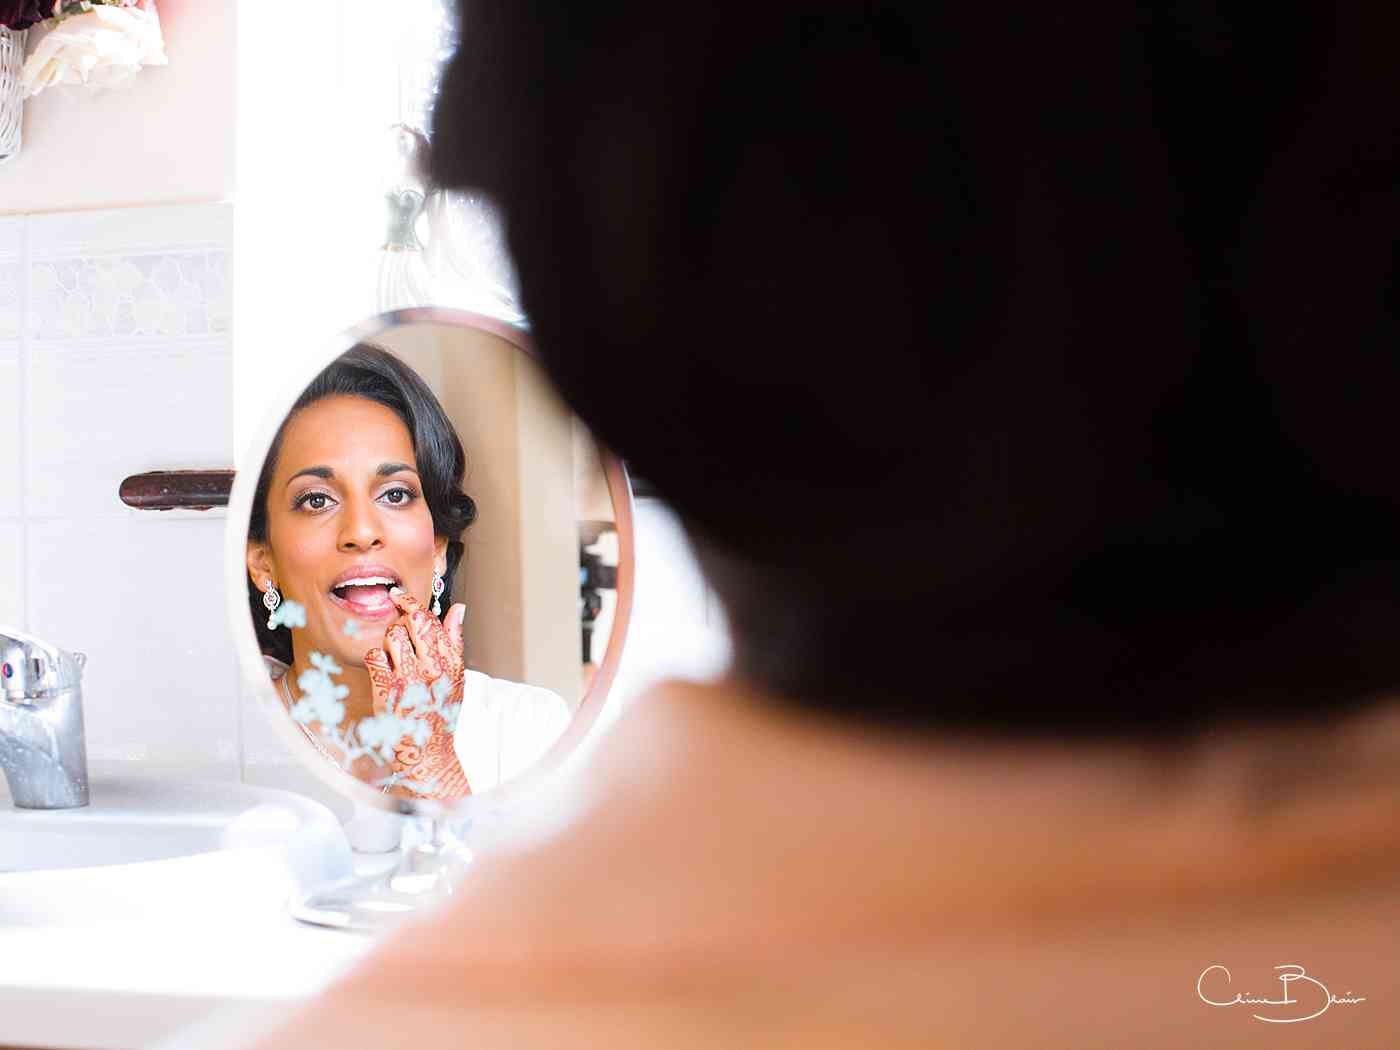 Bride getting ready by Ragley Hall documentary wedding photographer Clive Blair